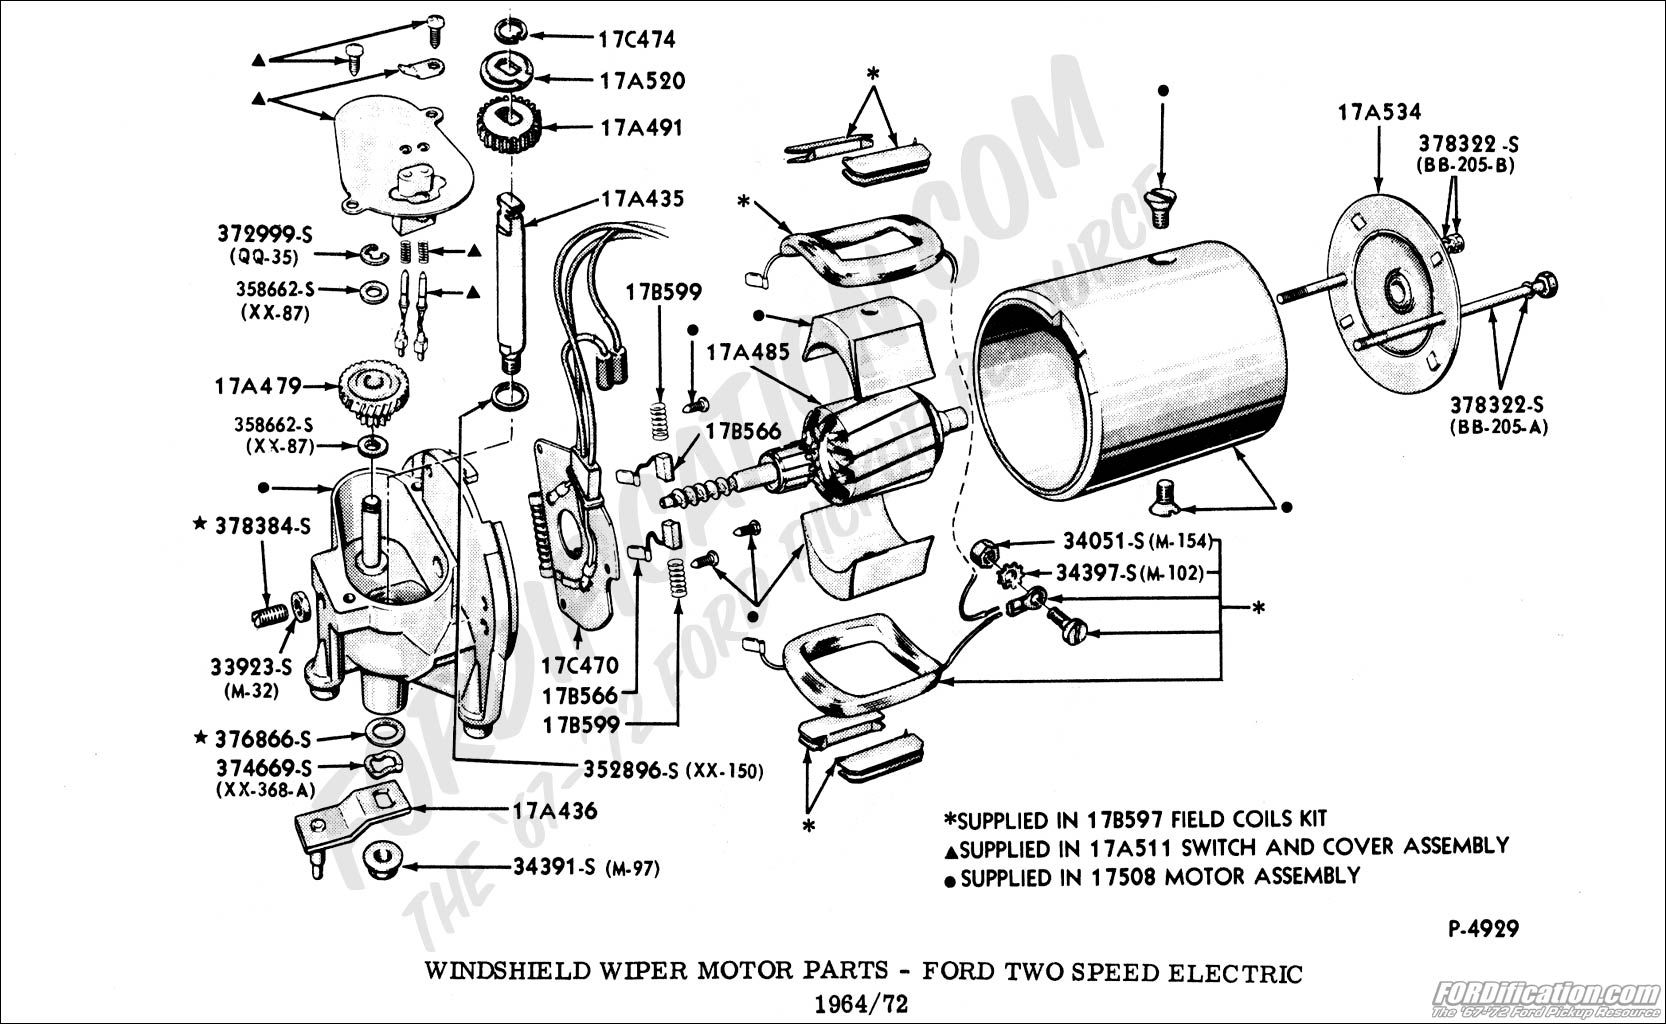 Fascinating Paccar Wiper Motor Wiring Diagram Pictures - Best Image ...